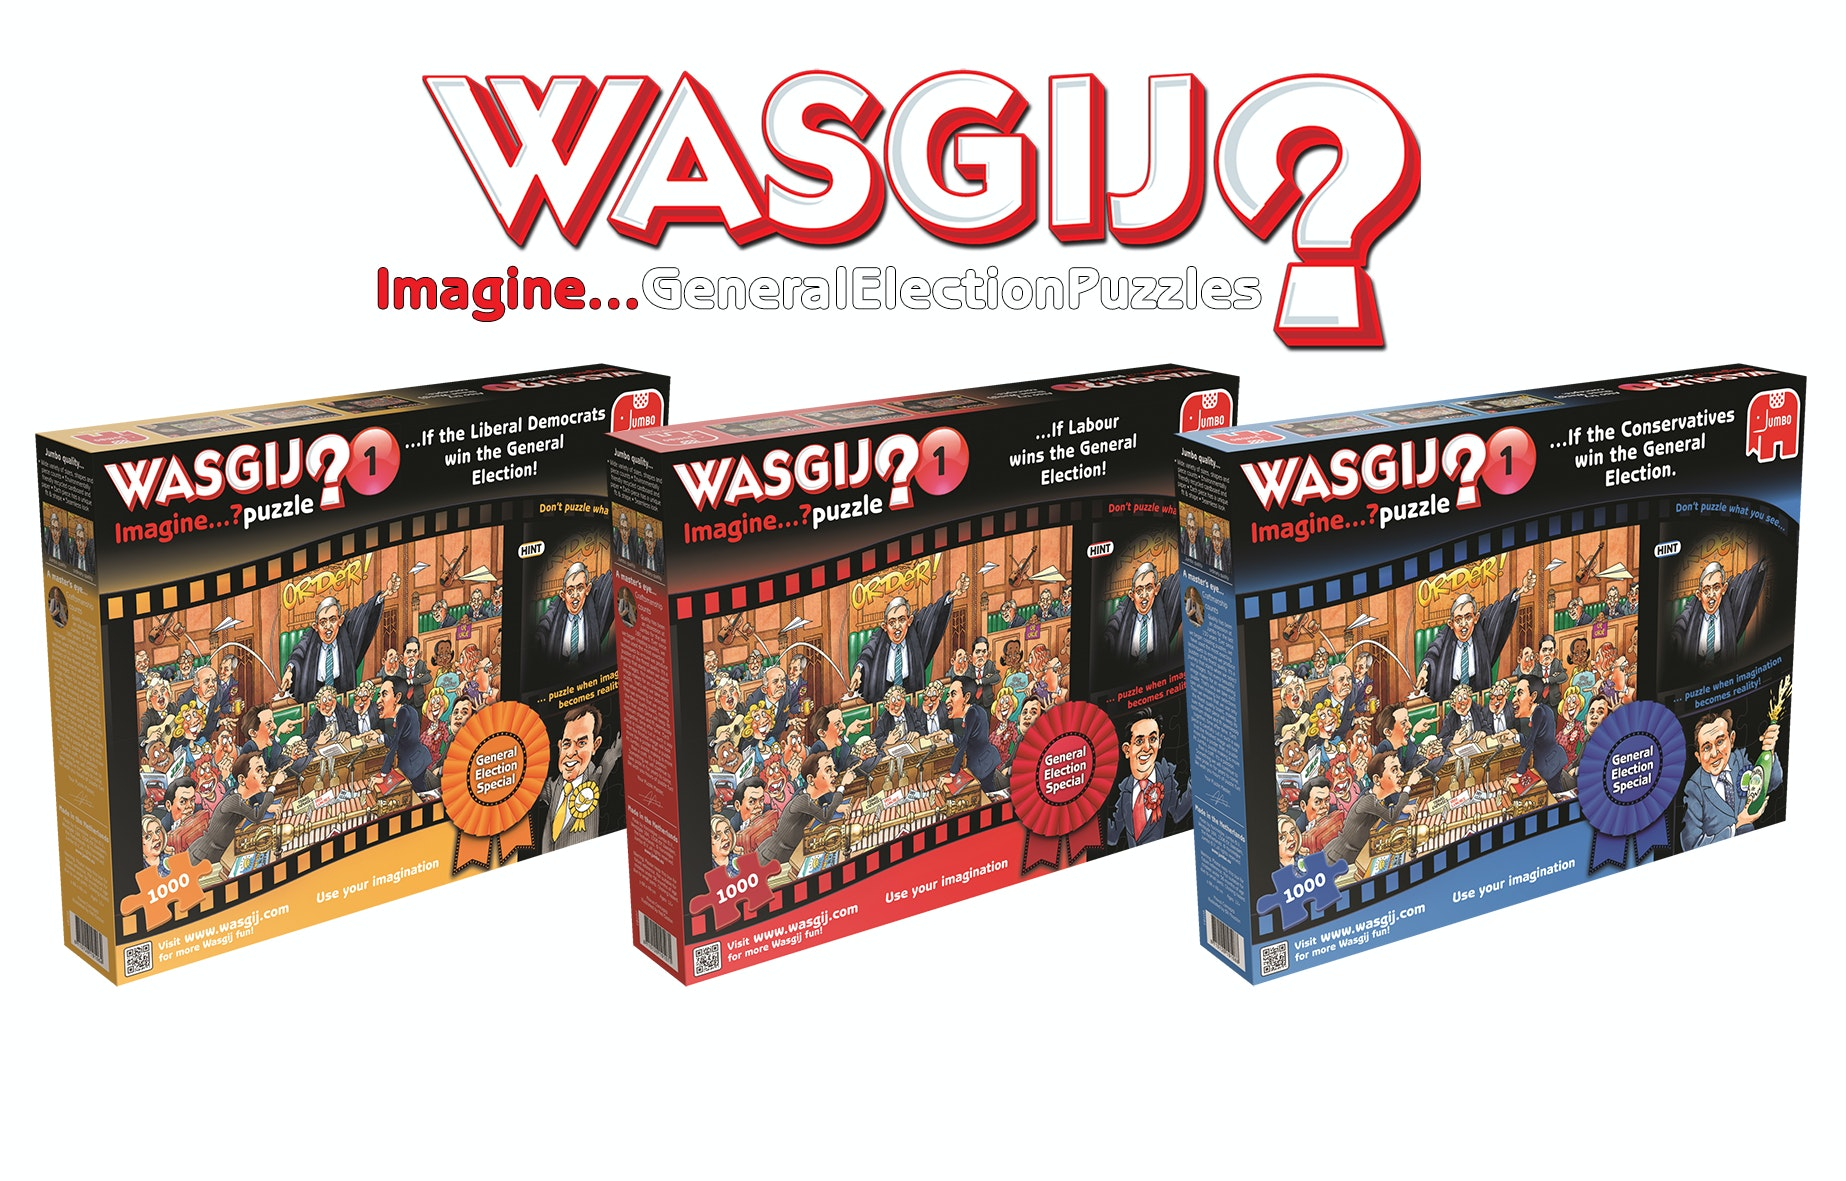 Wasgij election puzzle product images and logo